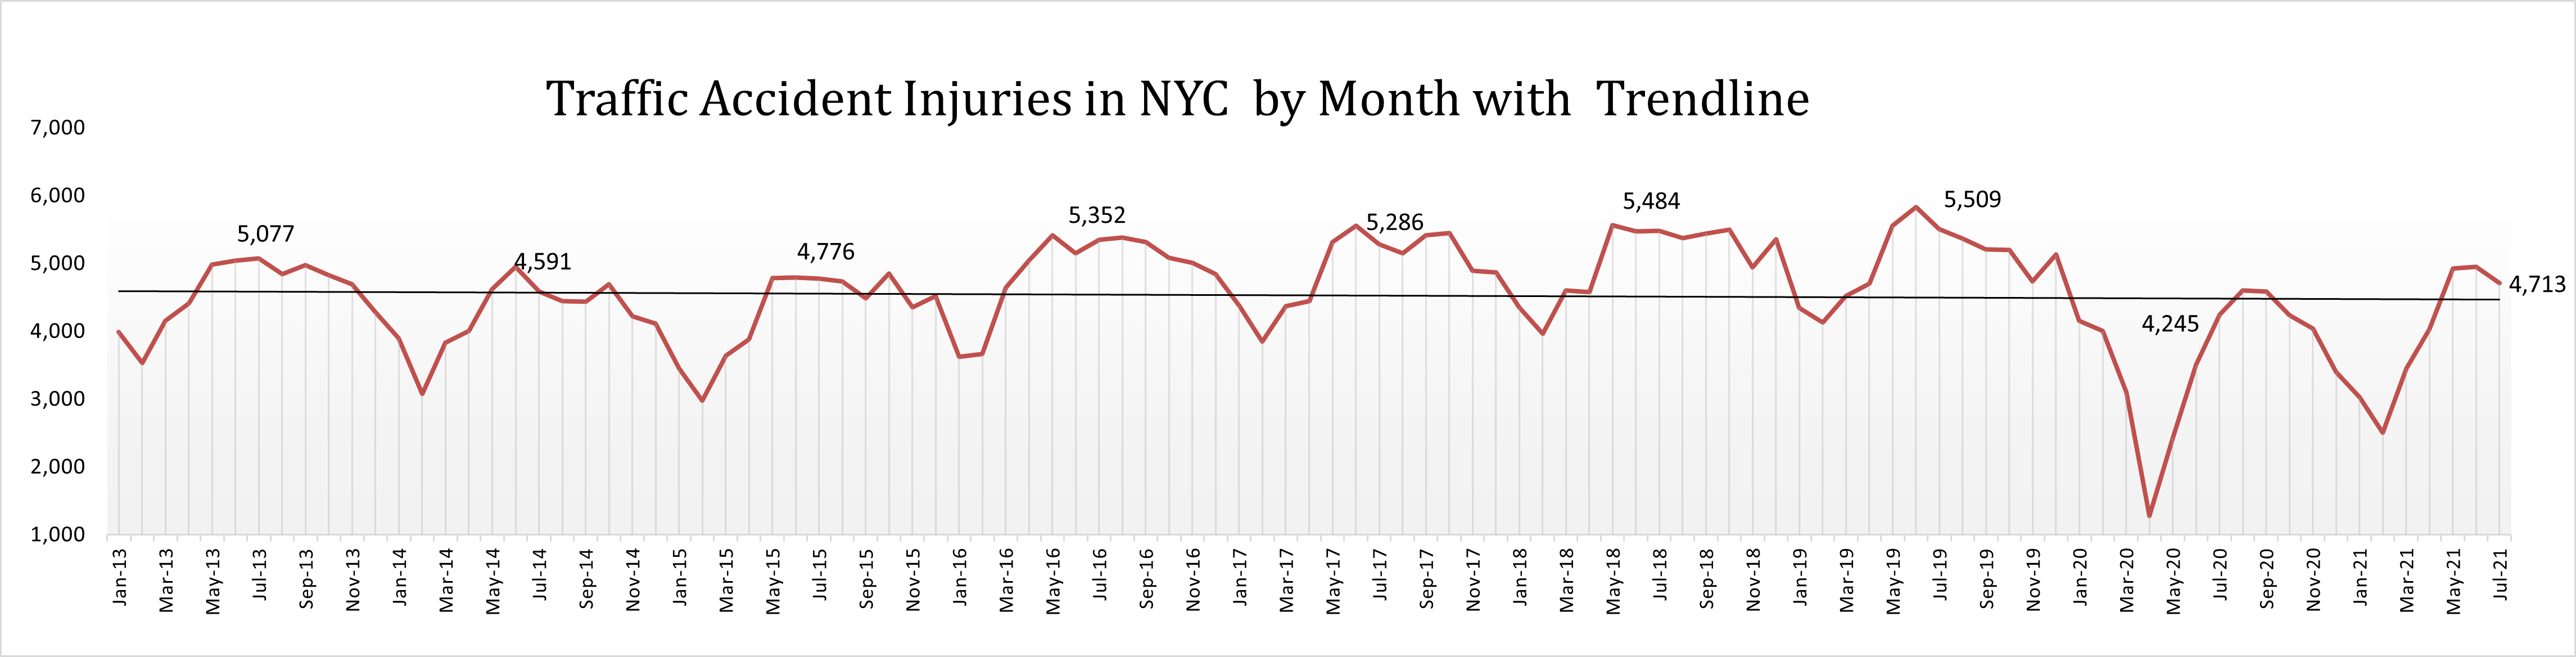 traffic accident injuries New York City July 2021